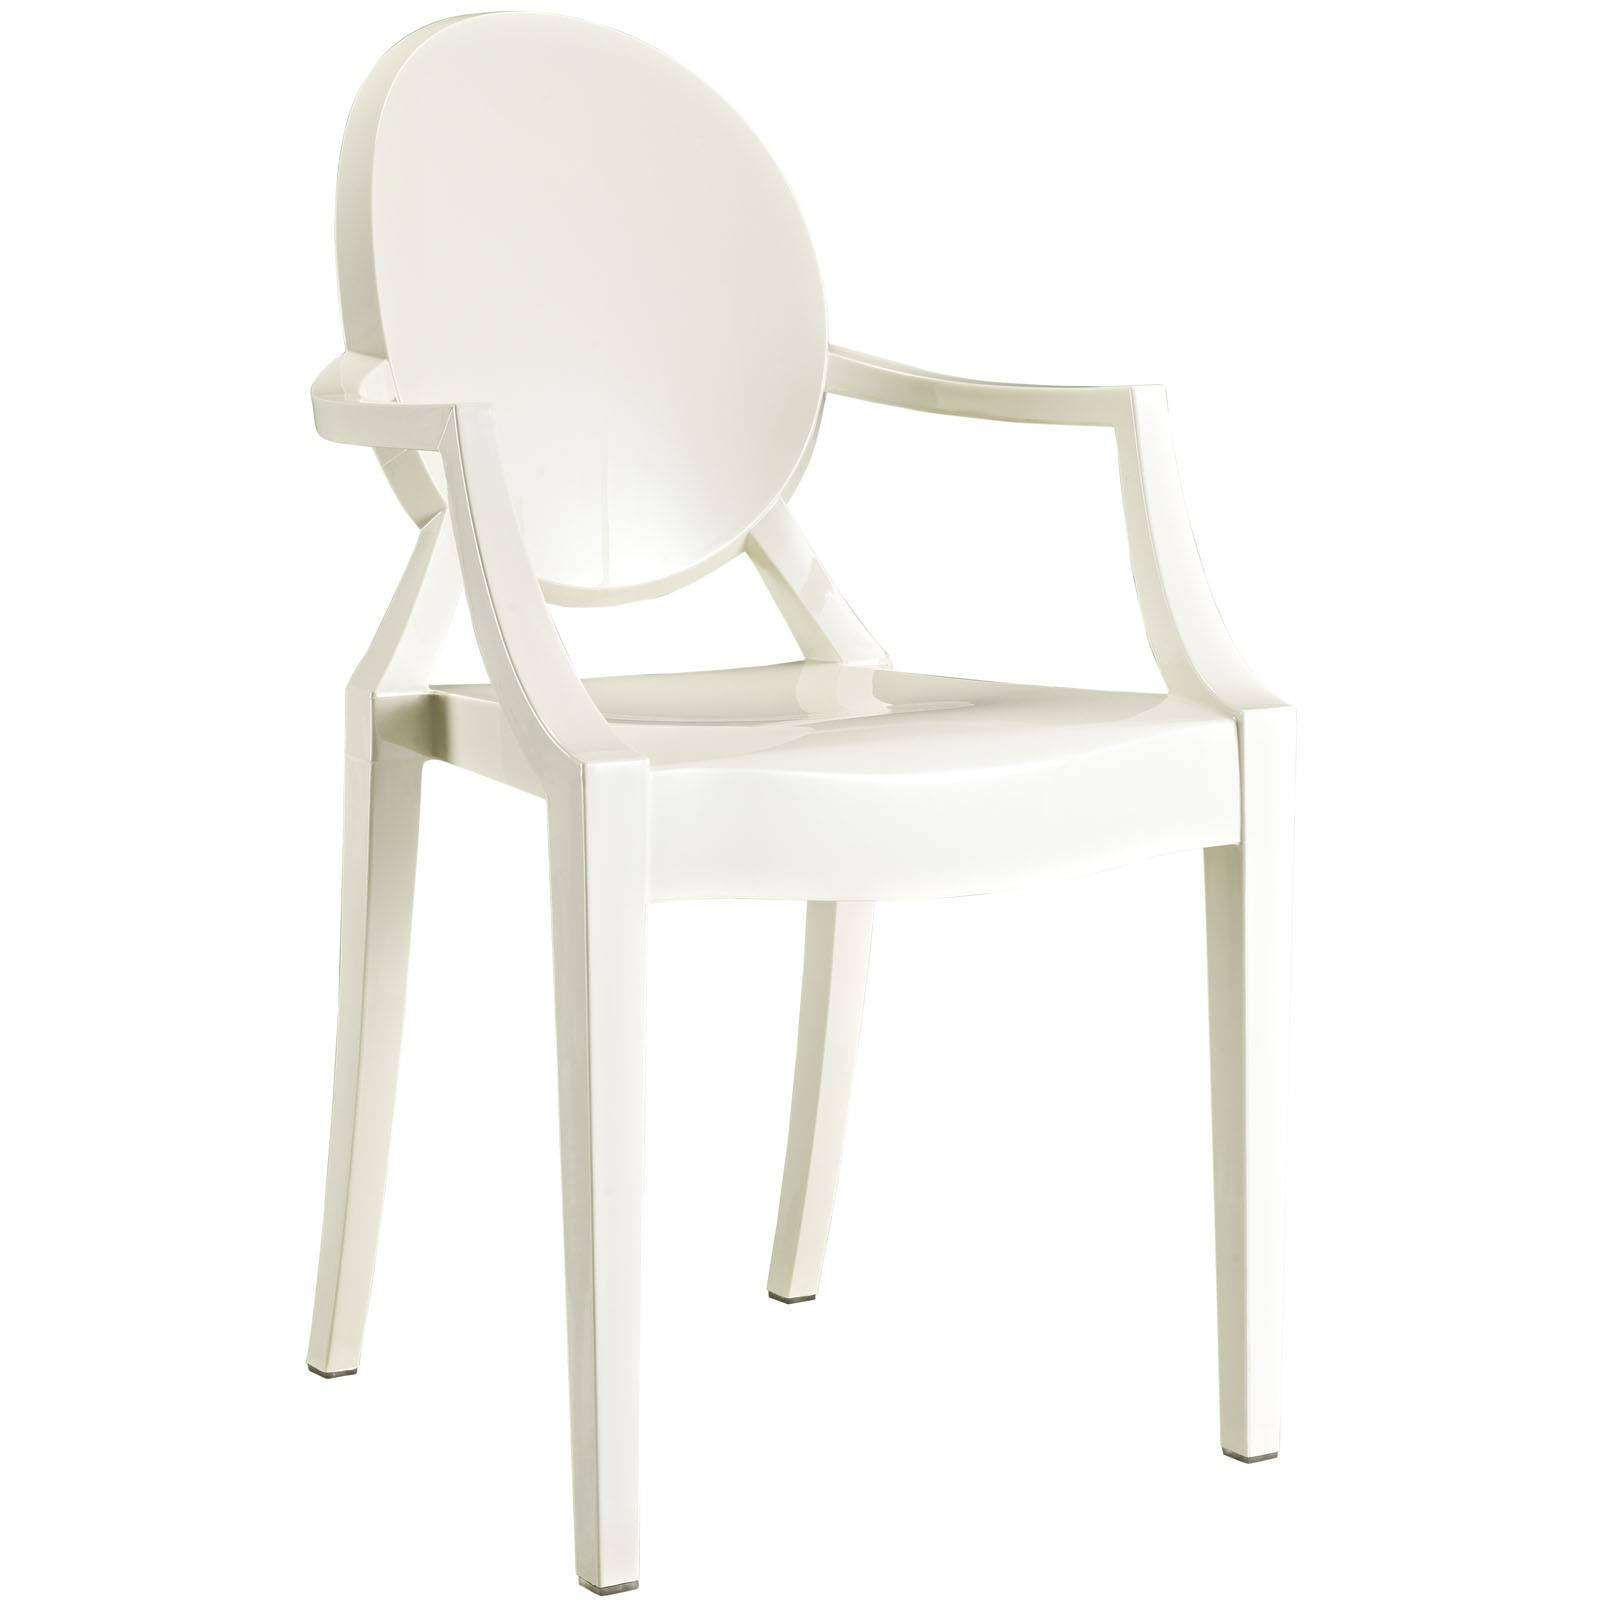 Bien-aimé Philippe Starck Style Louis Ghost Arm Chair EO96